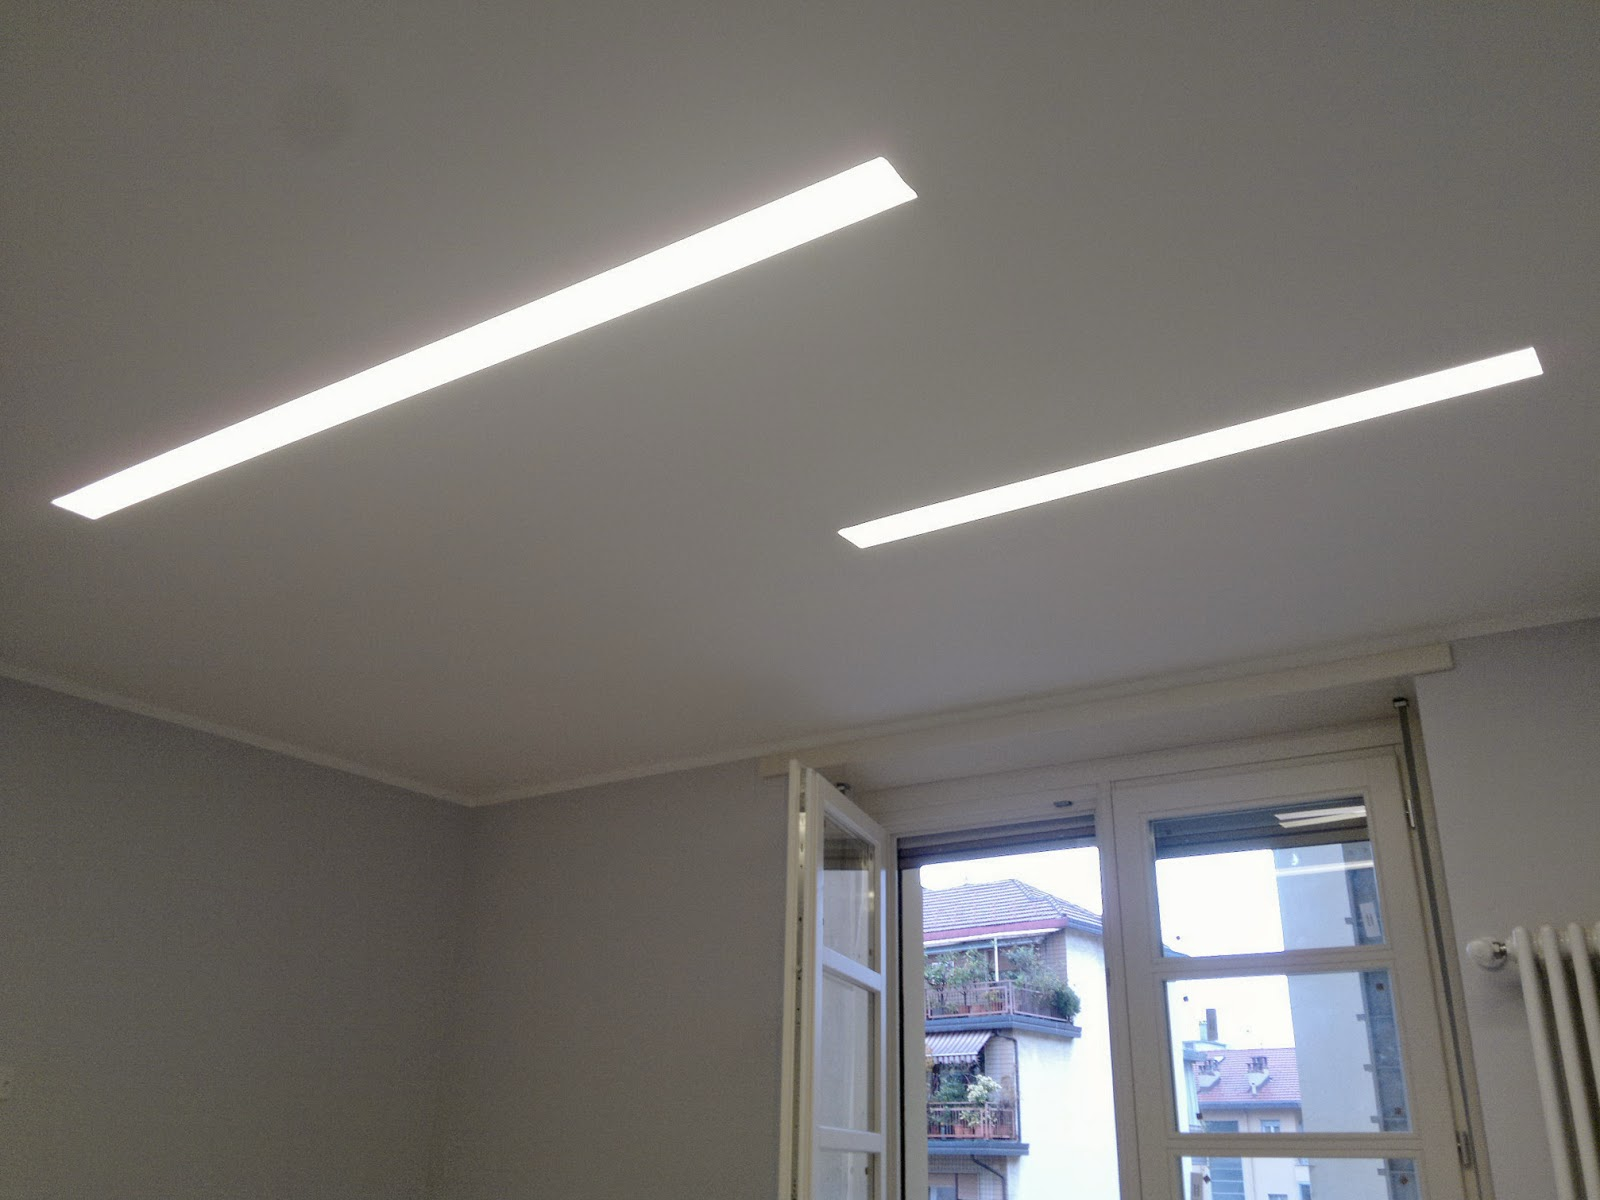 Illuminazione led casa spoke faretti e barre led con for Luci a led per interni casa